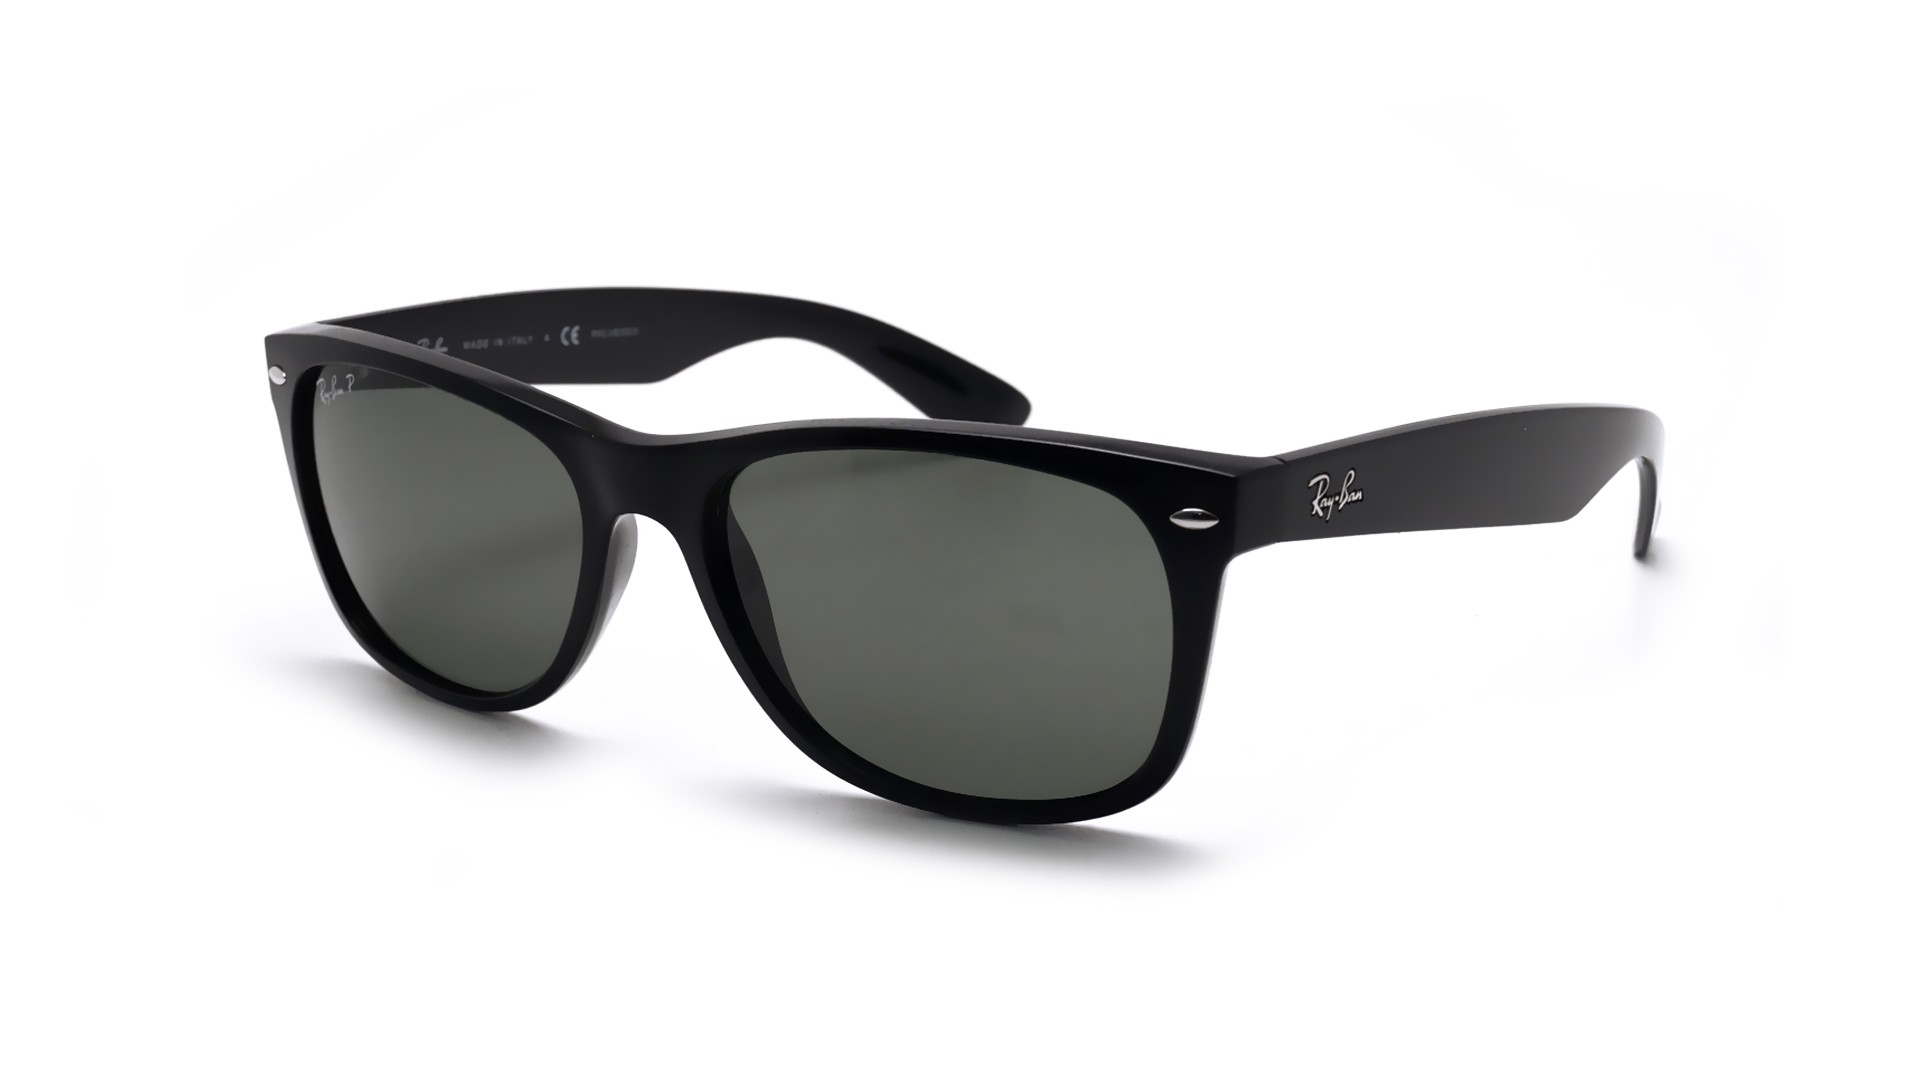 ray ban new wayfarer black rb2132 901 58 58 18 polarized visiofactory rh visiofactory com ray-ban rb2132 new wayfarer classic 901 ray-ban rb2132 new wayfarer classic 901/58 polarized